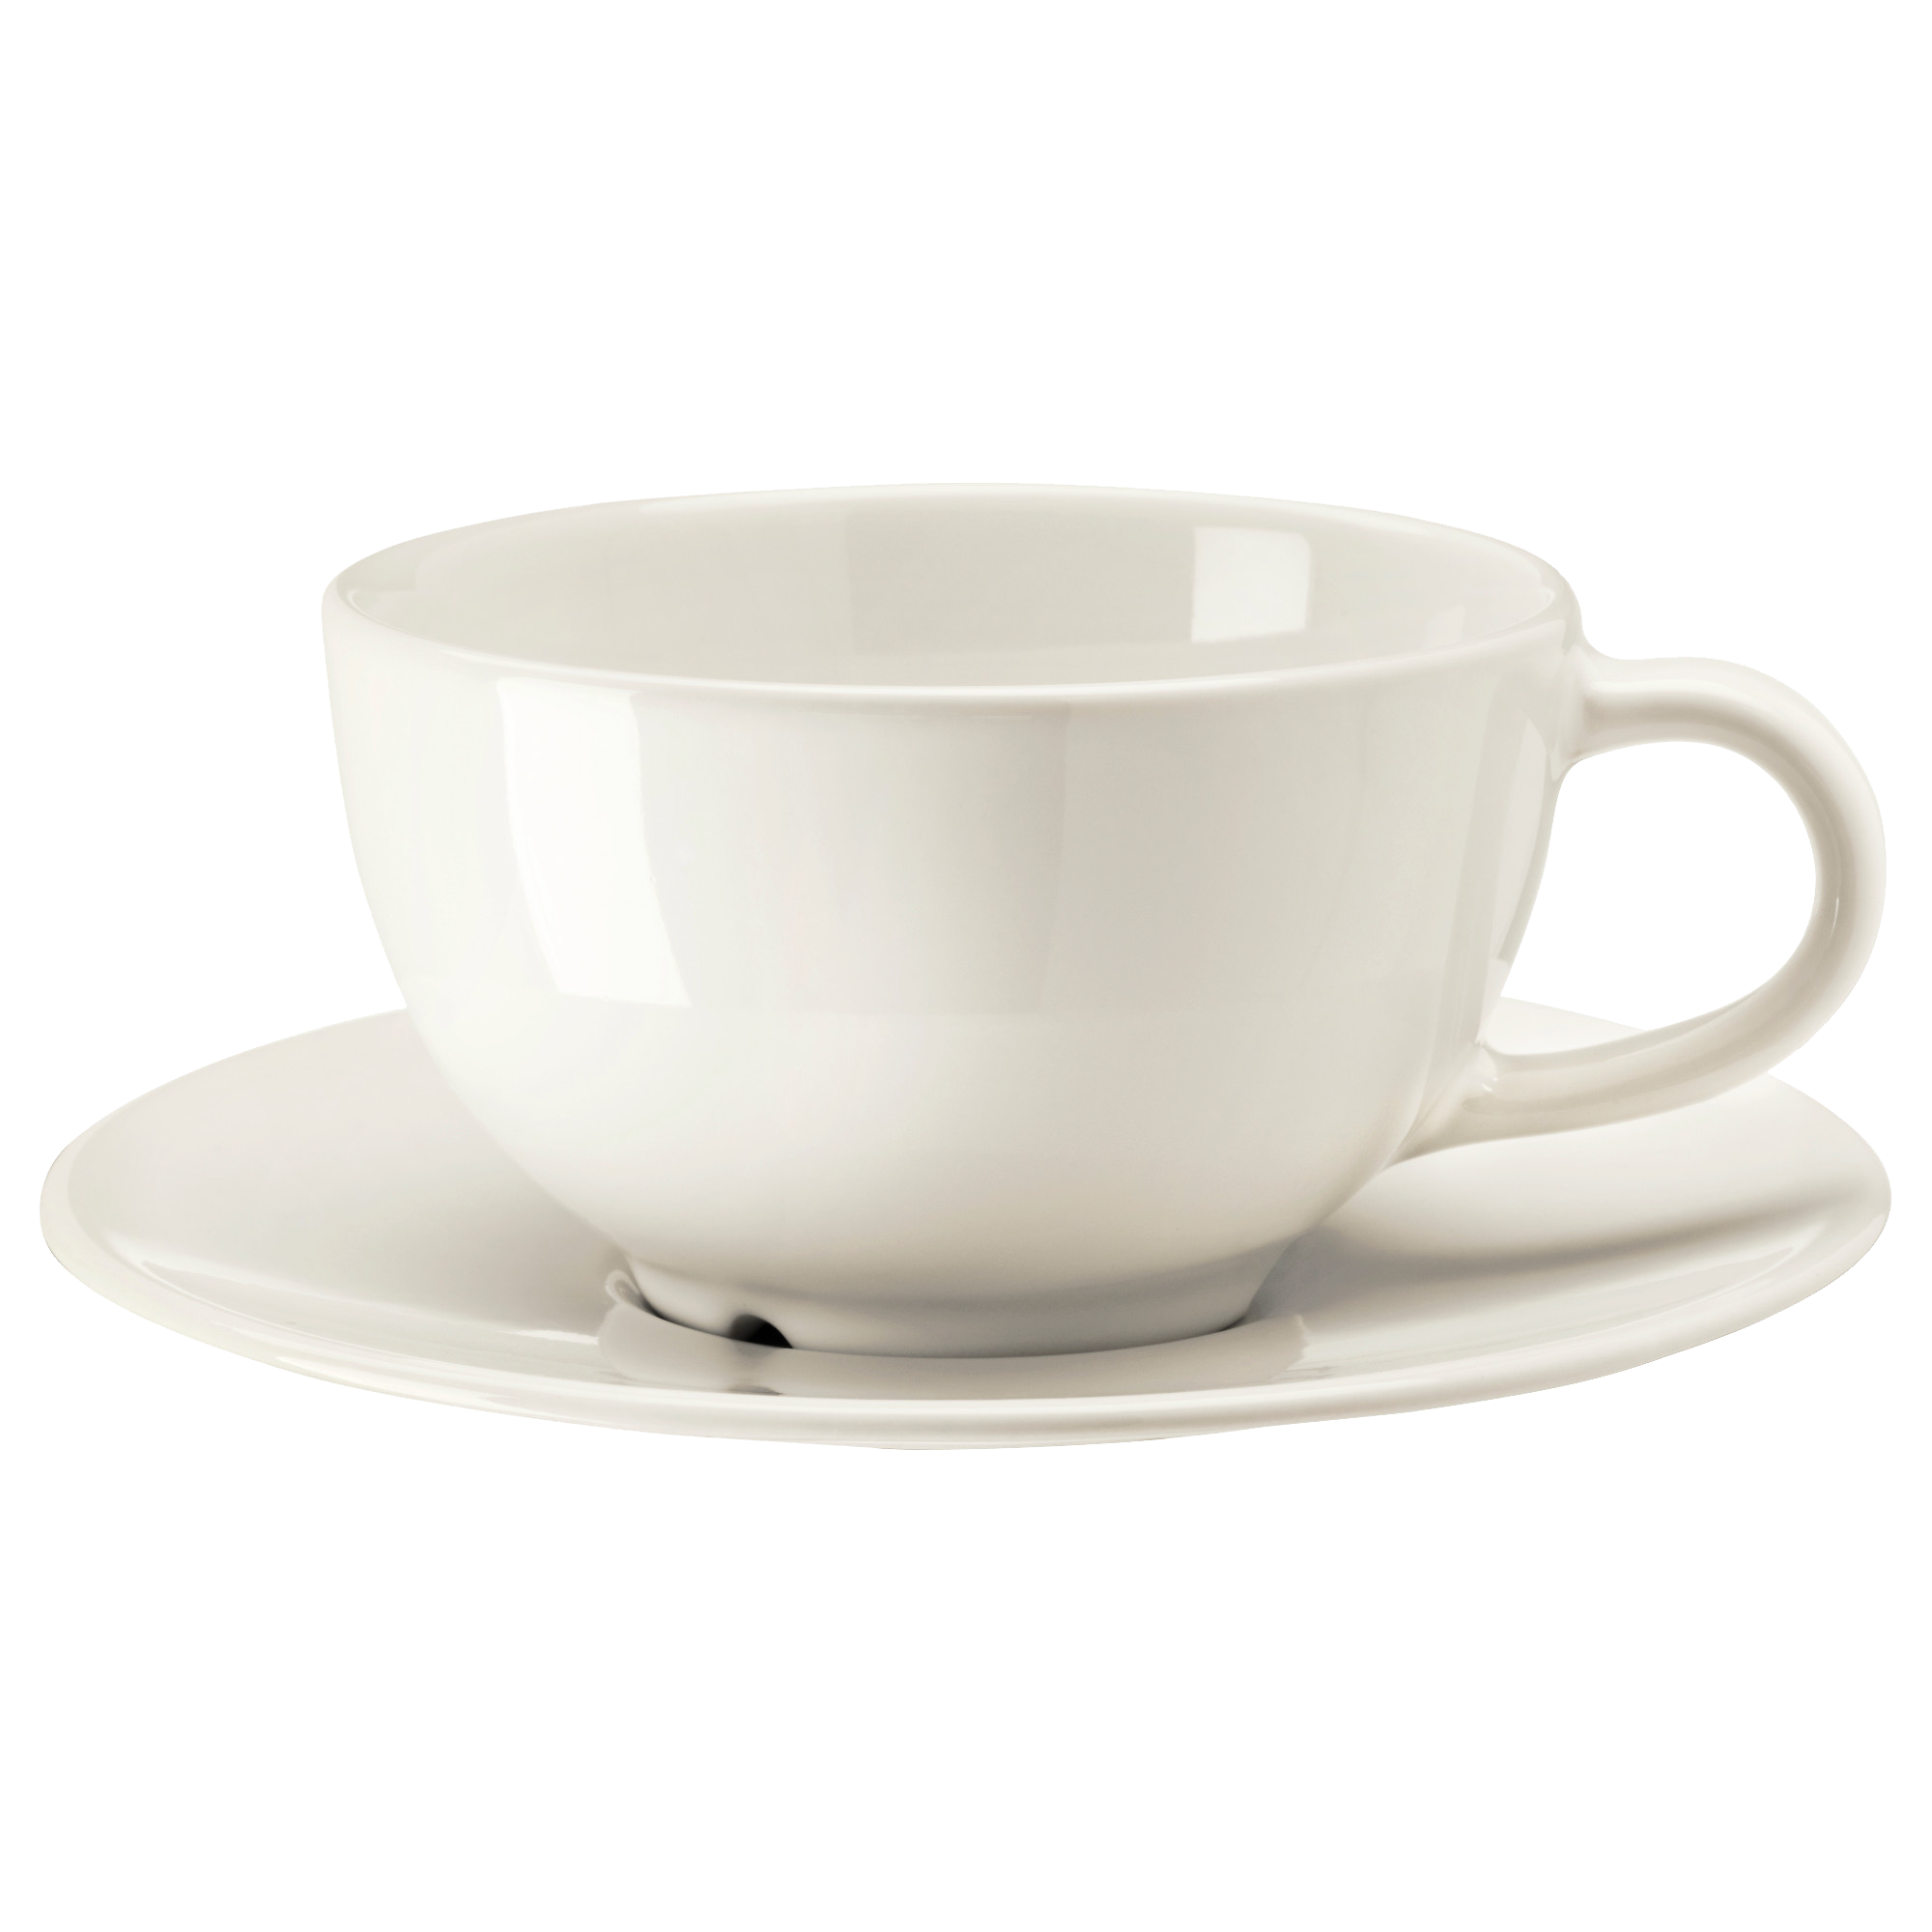 Tea Cup PNG Images Transparent Free Download.